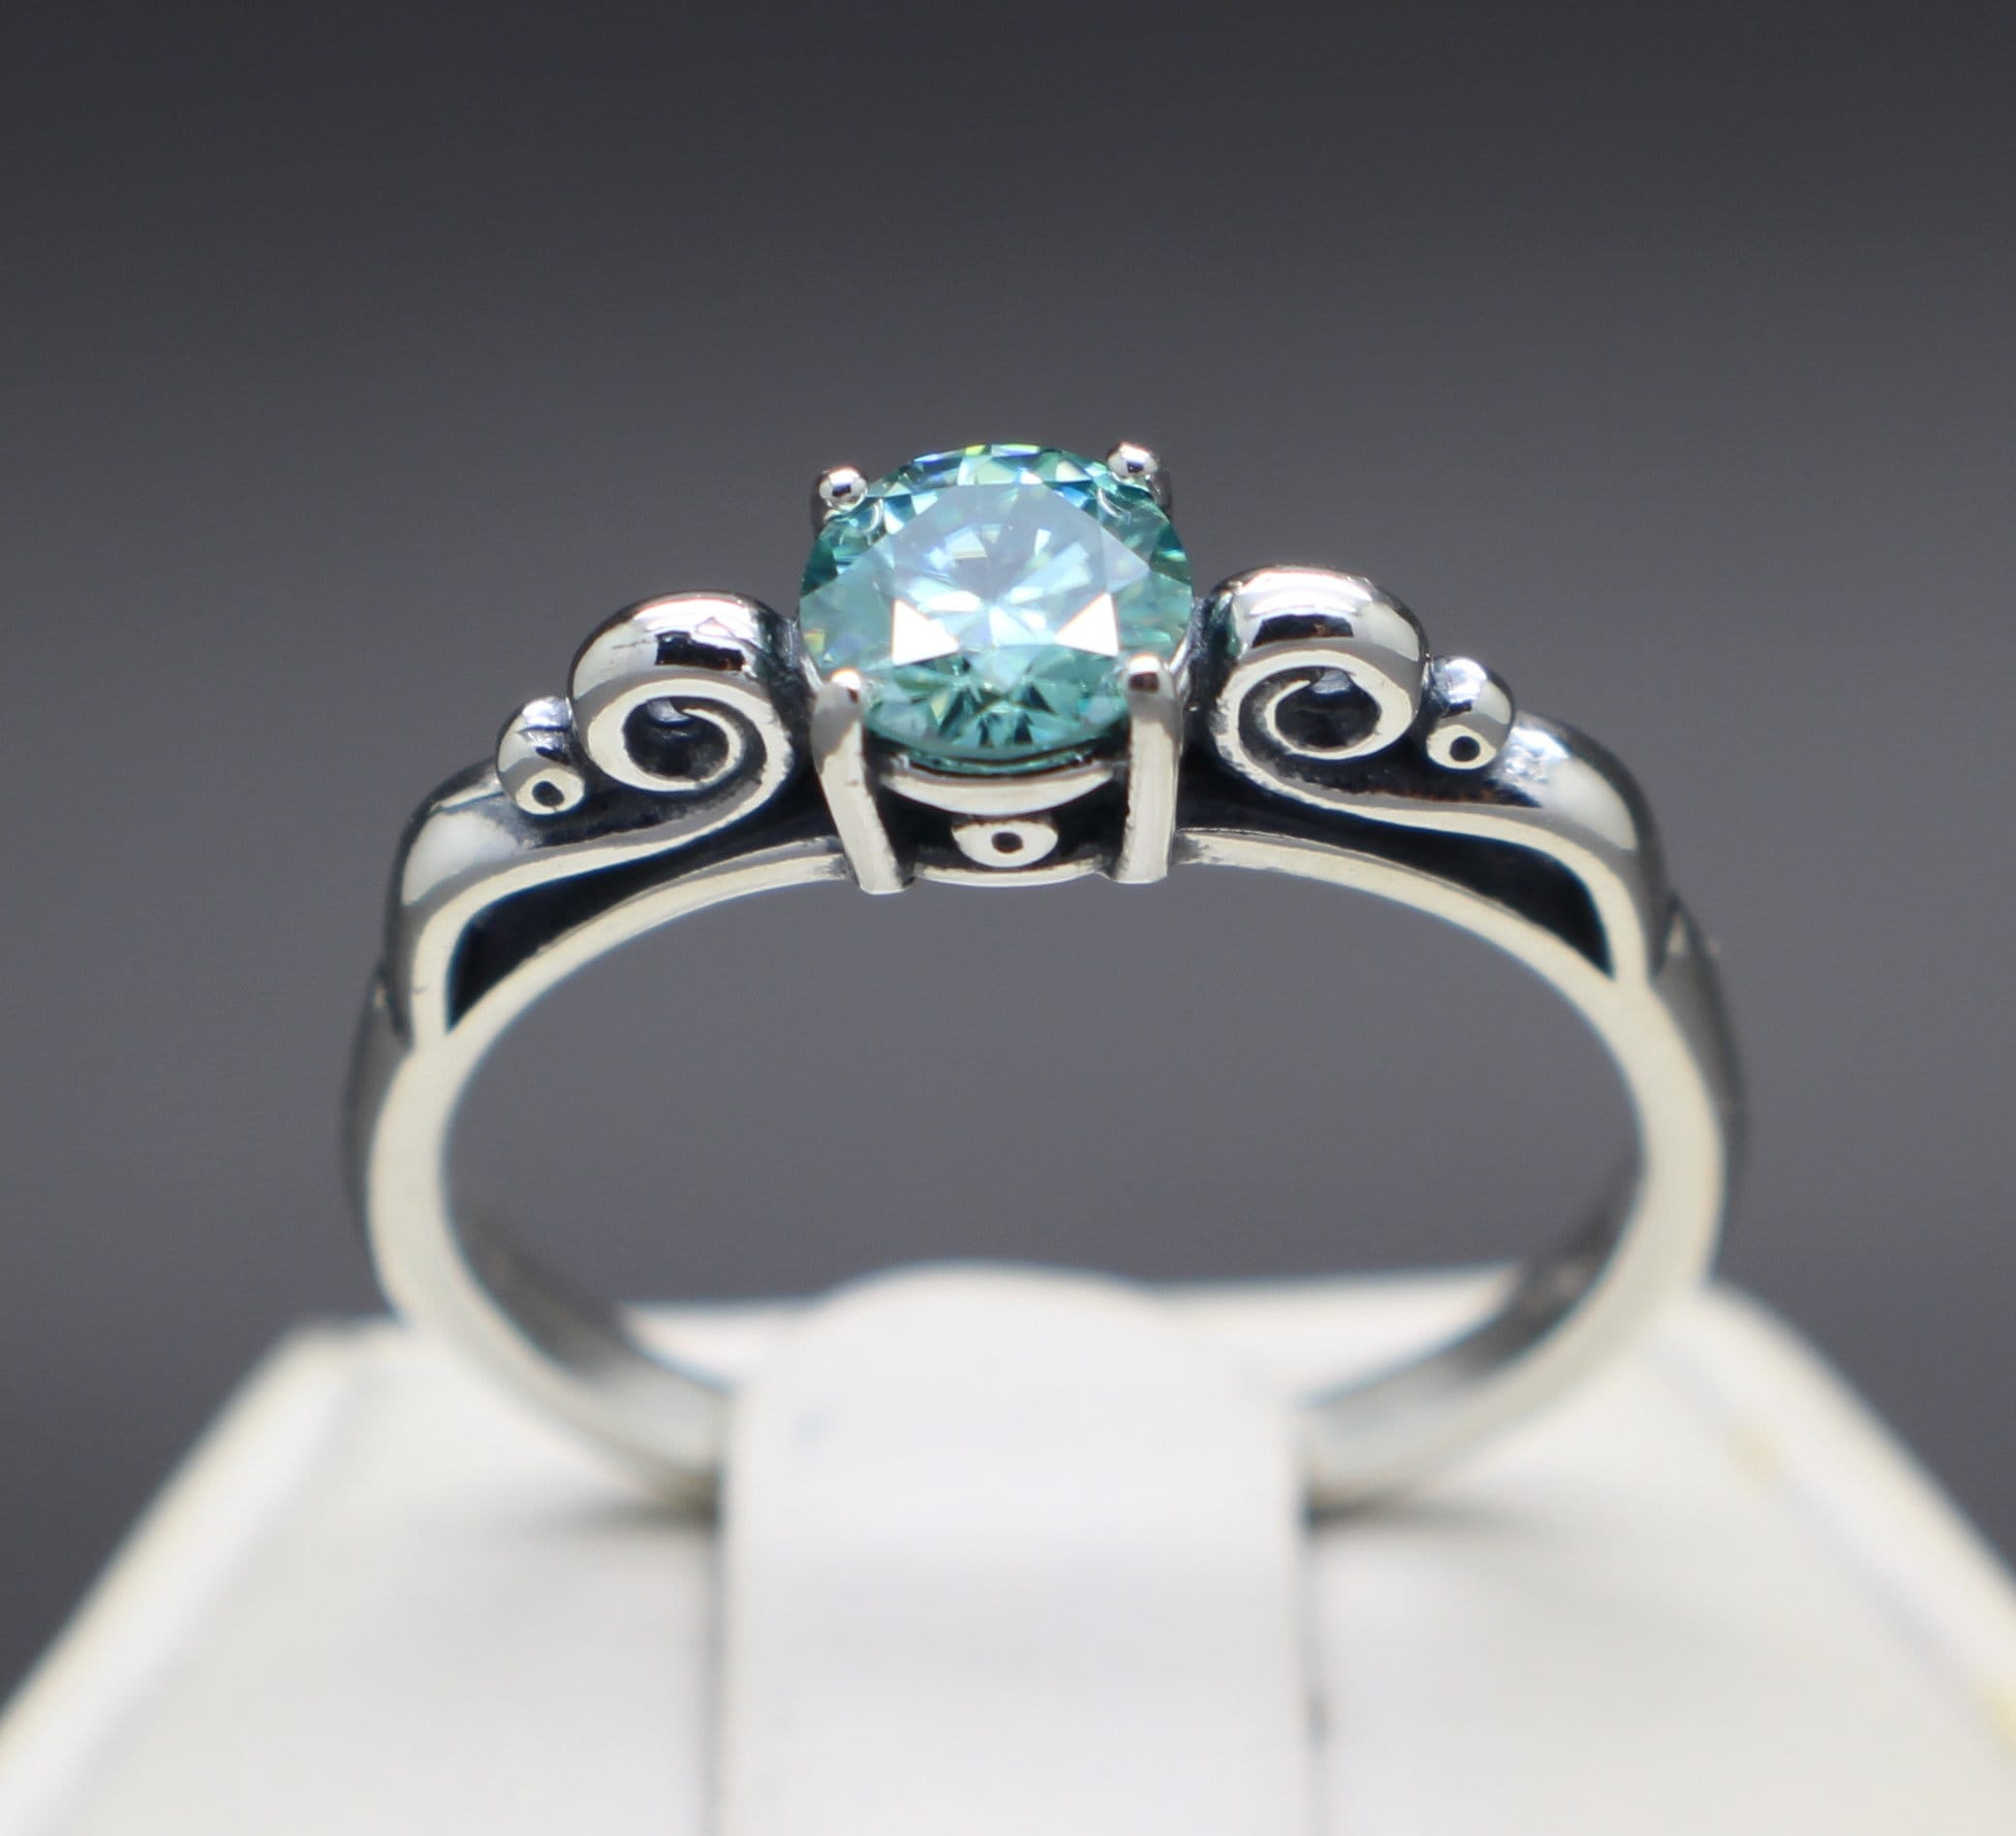 0.50cts to .75cts Fancy Ice Blue Diamond Scroll Ring VS-1 Clarity and Apprasied!